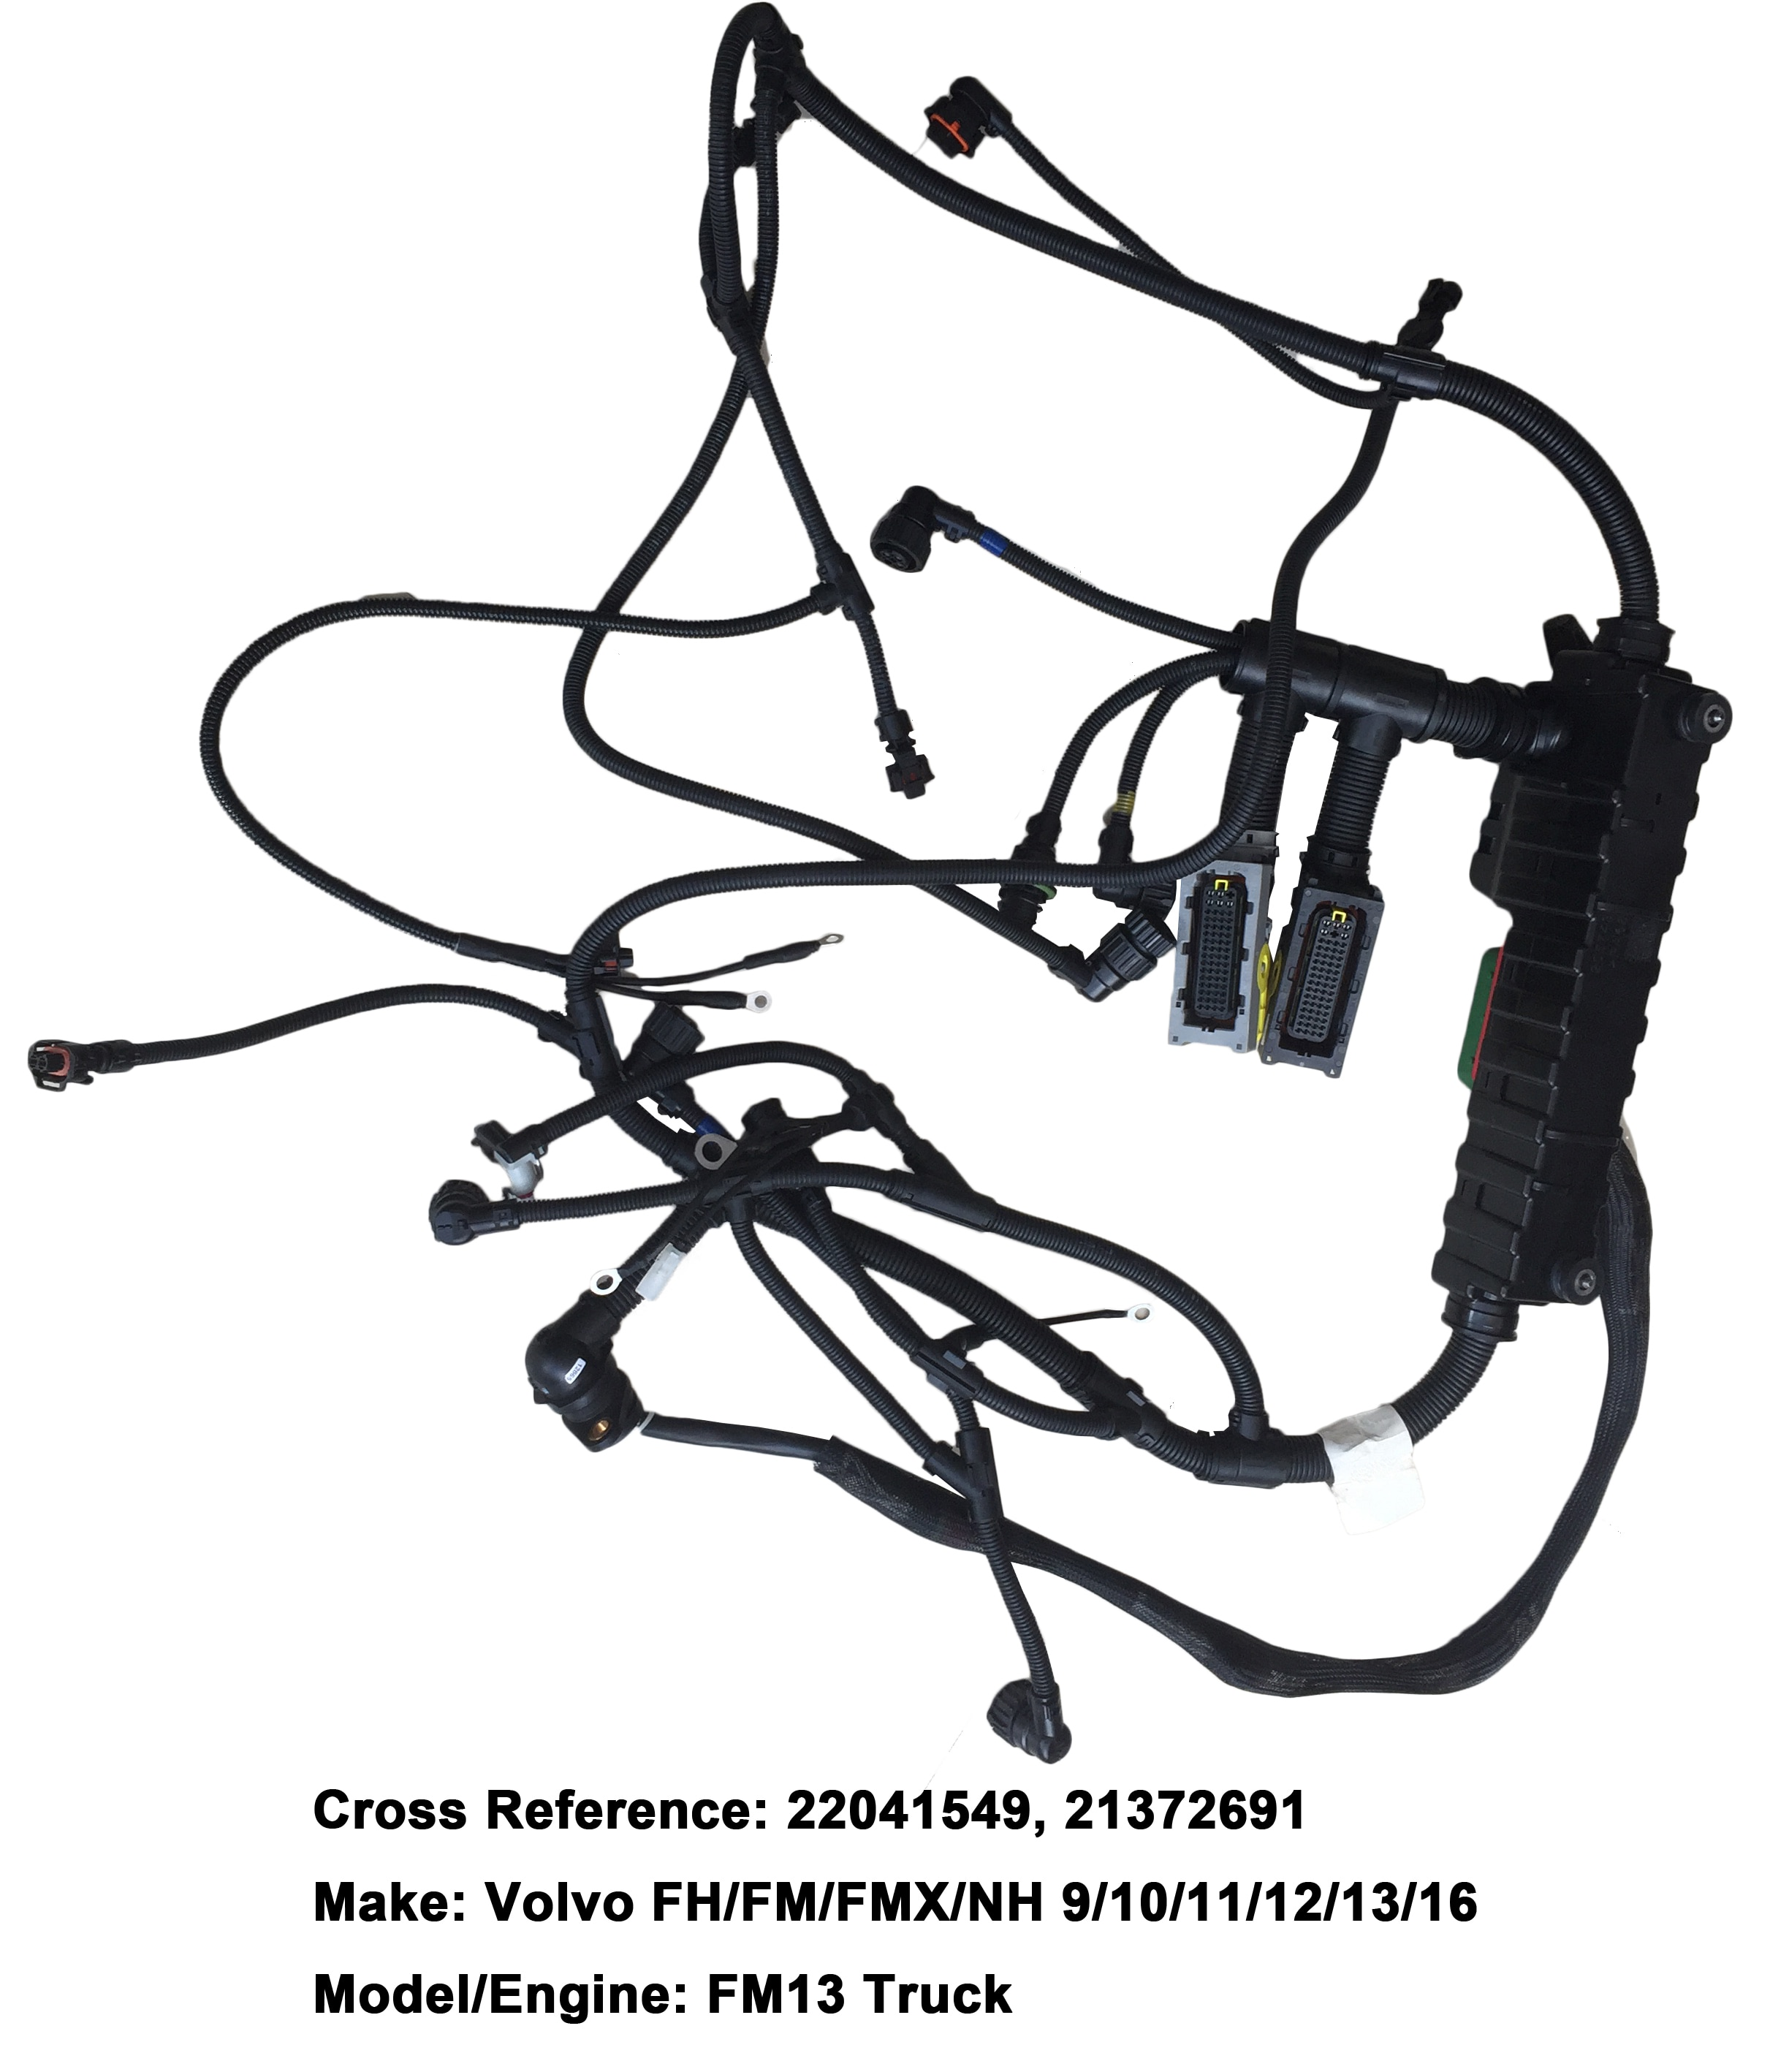 Engine Wiring Cable Harness 22041549 for VOLVO Heavy Truck 22041549 21372691 enlarge